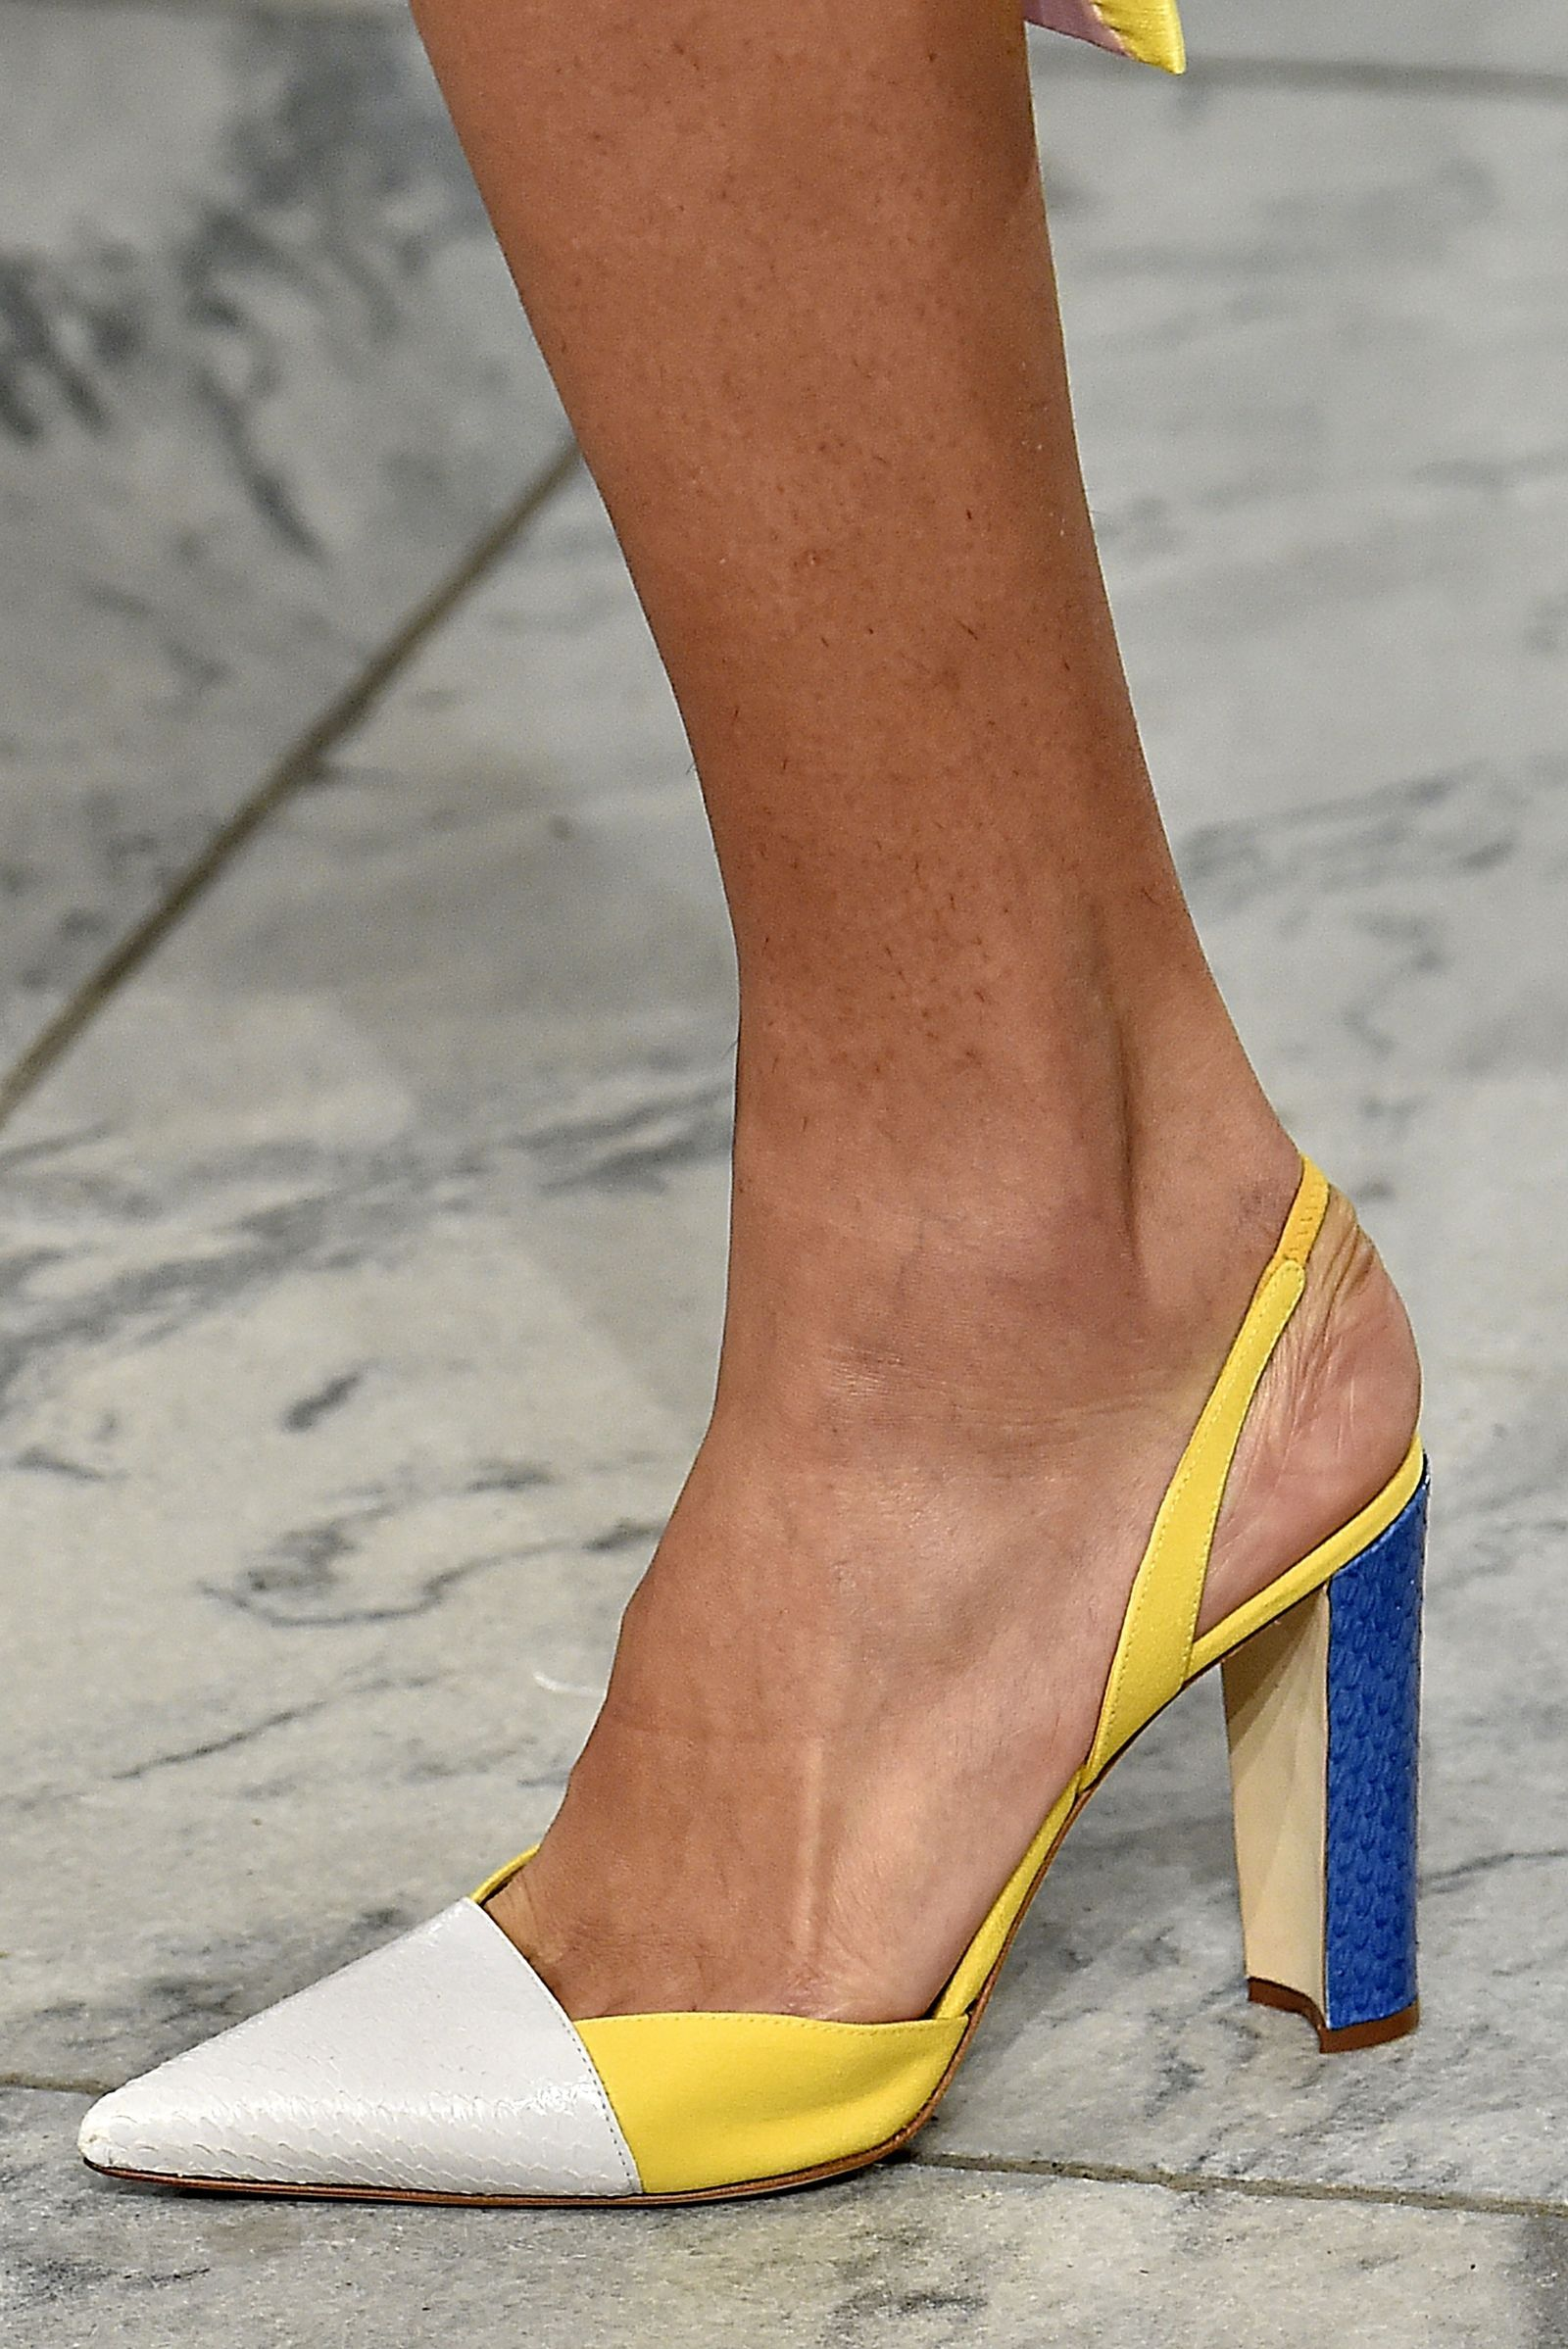 Carolina Herrera - The Hottest Spring 2018 Shoes Spotted On The Runways